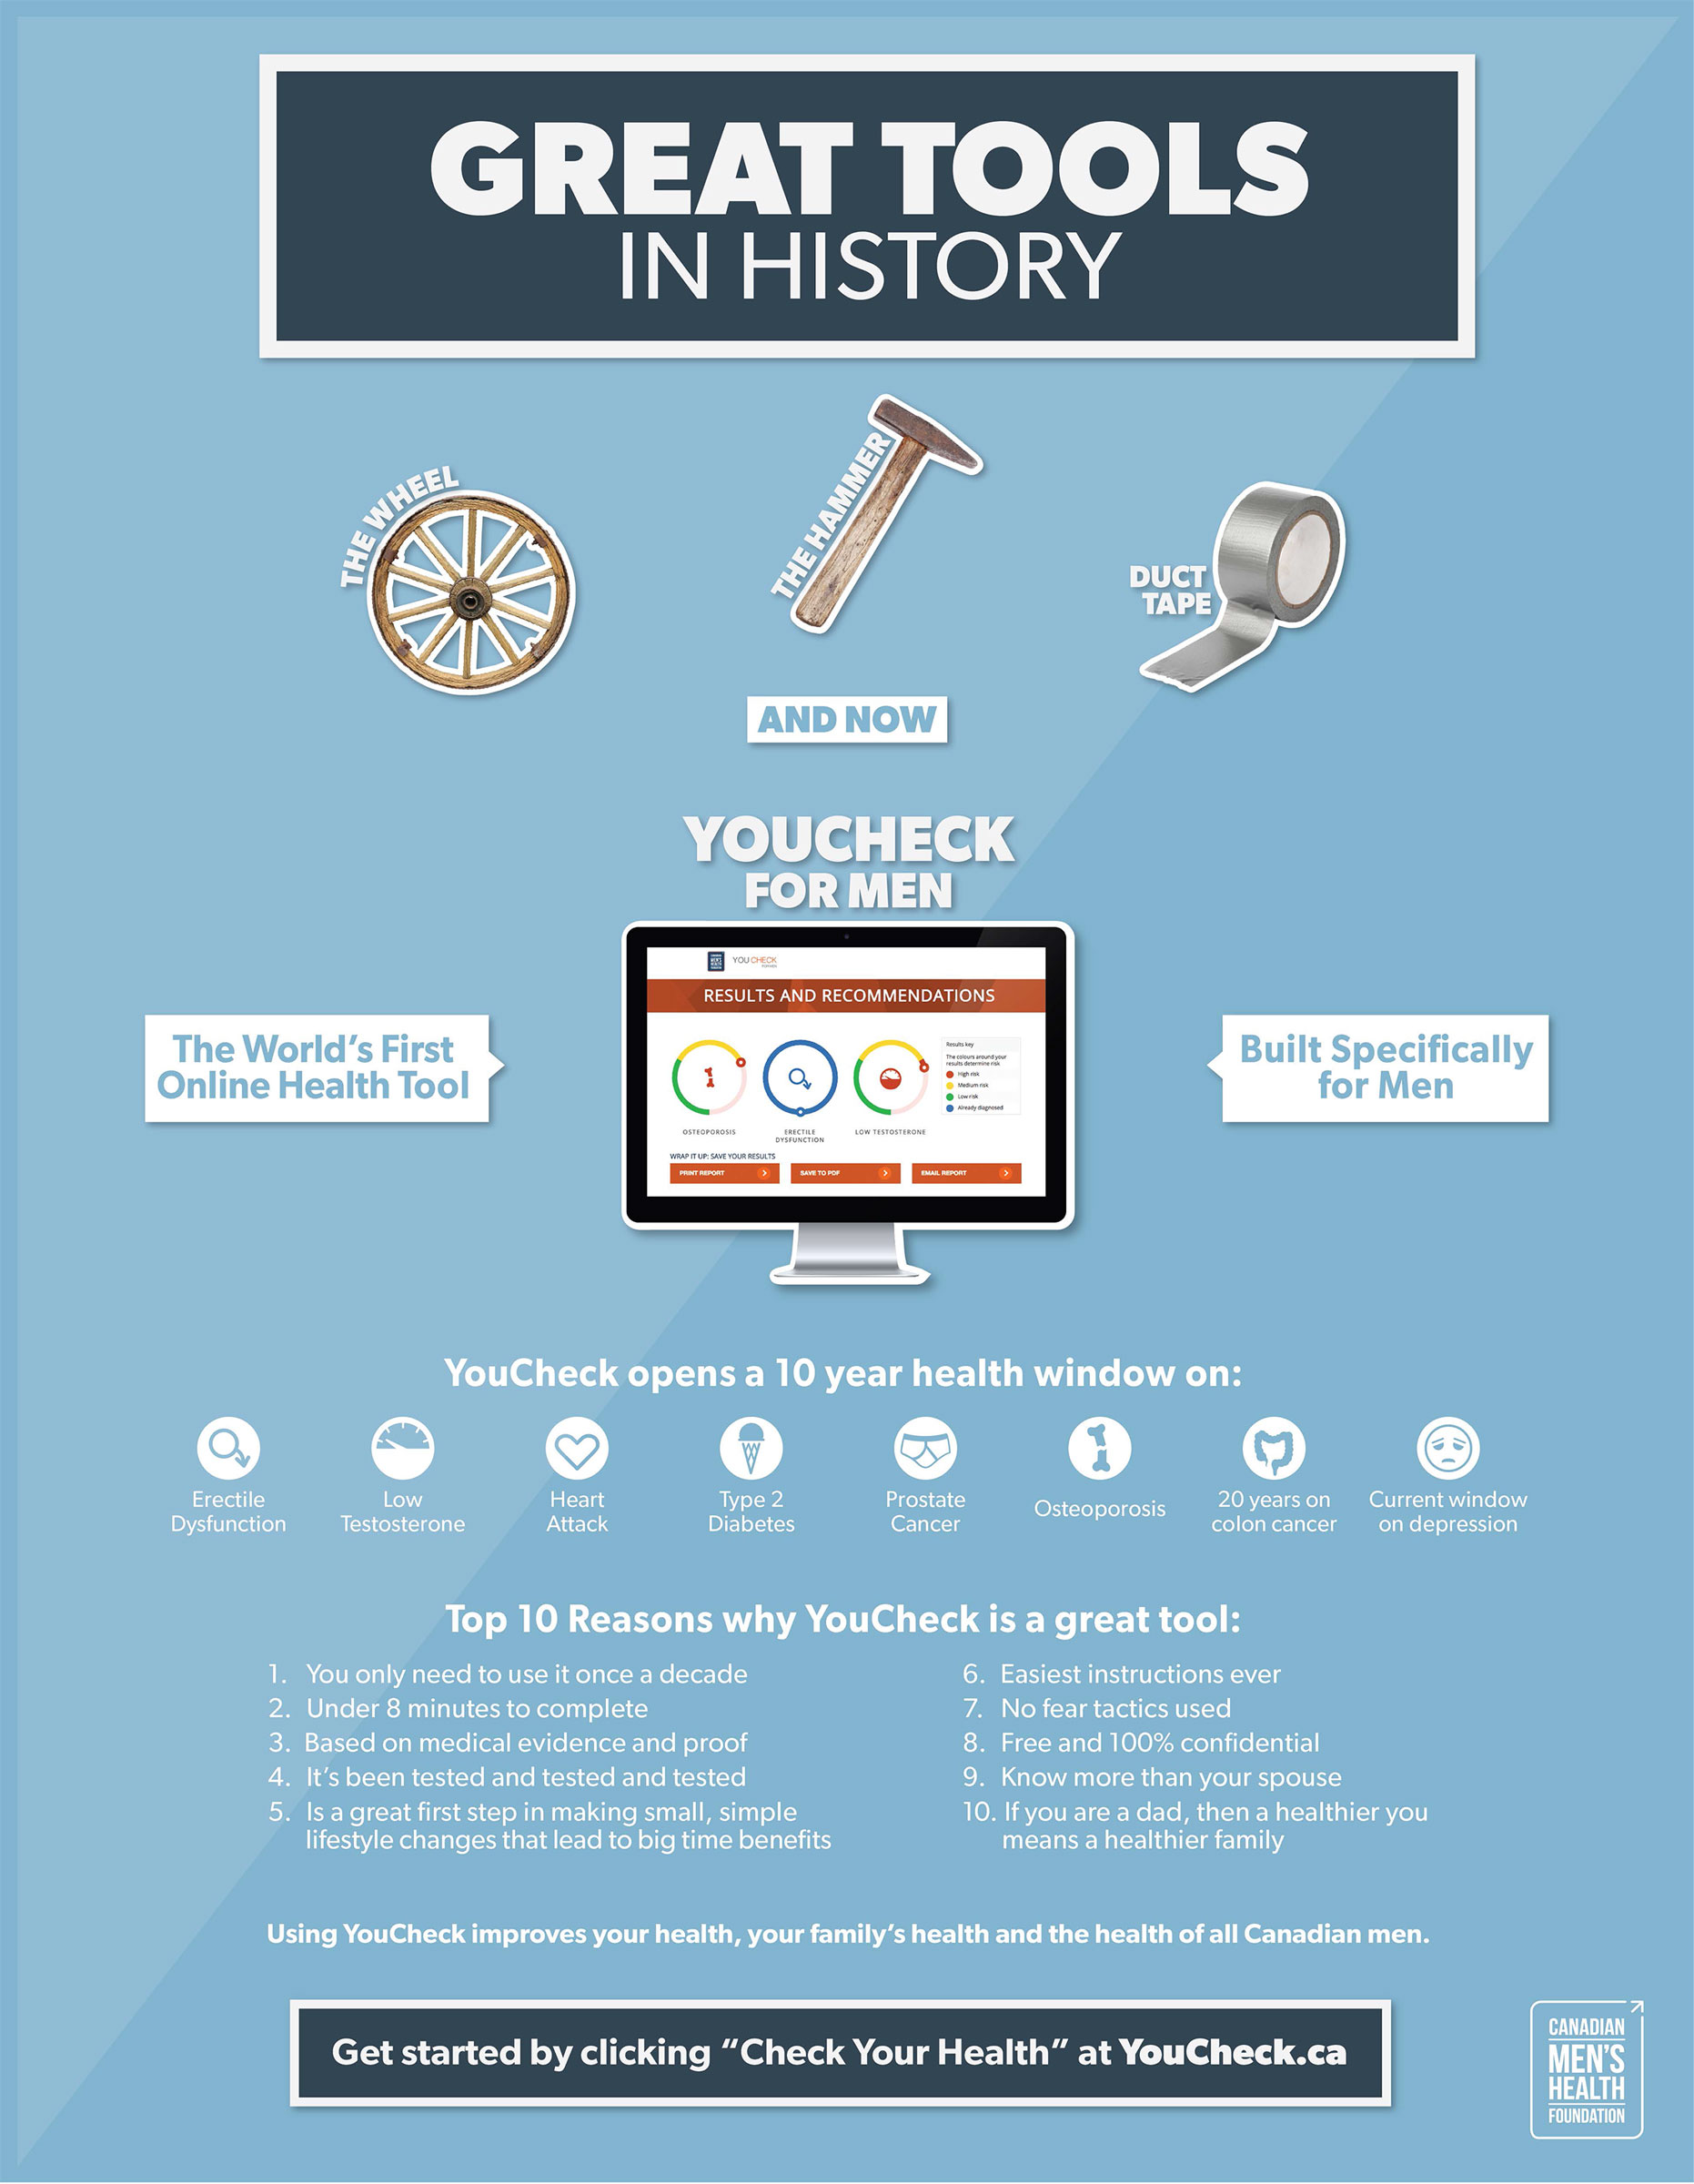 Great Tools In History